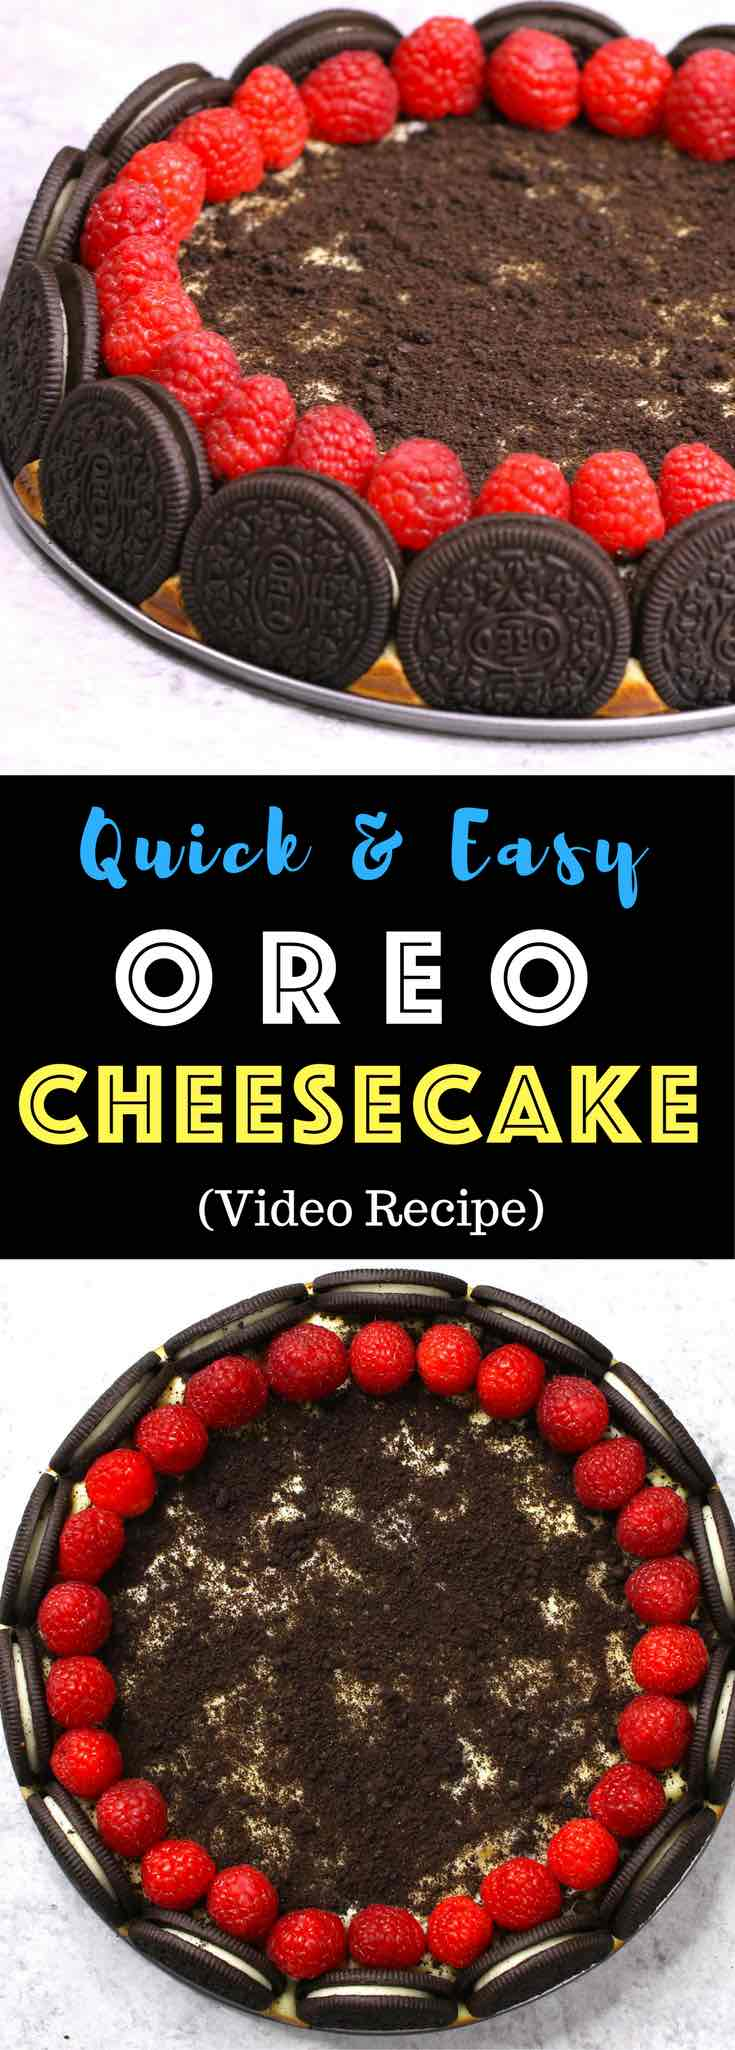 The Best Oreo Cheesecake – the easiest and most beautiful cake topped with cookies and cream crumbs and fresh raspberries. All you need is a few simple ingredients: oreo cookies, cream cheese, sugar, vanilla, eggs, sour cream and raspberries. Great for dessert, brunch, birthday parties or Mother's Day. Video recipe.